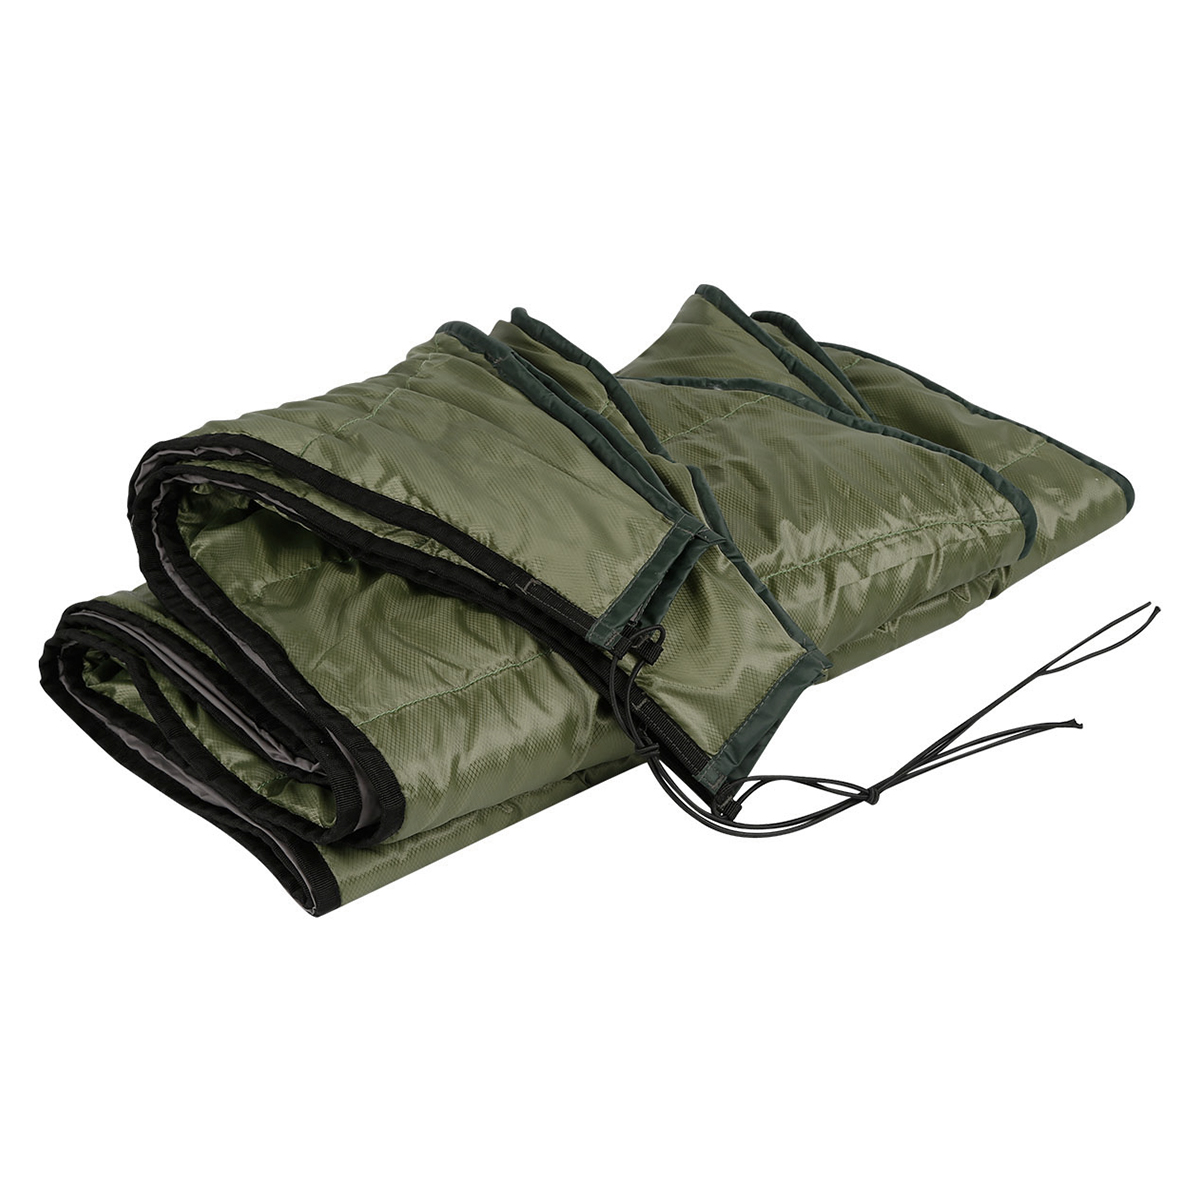 New Length Hammock Underquilt Ultralight Camping Hiking